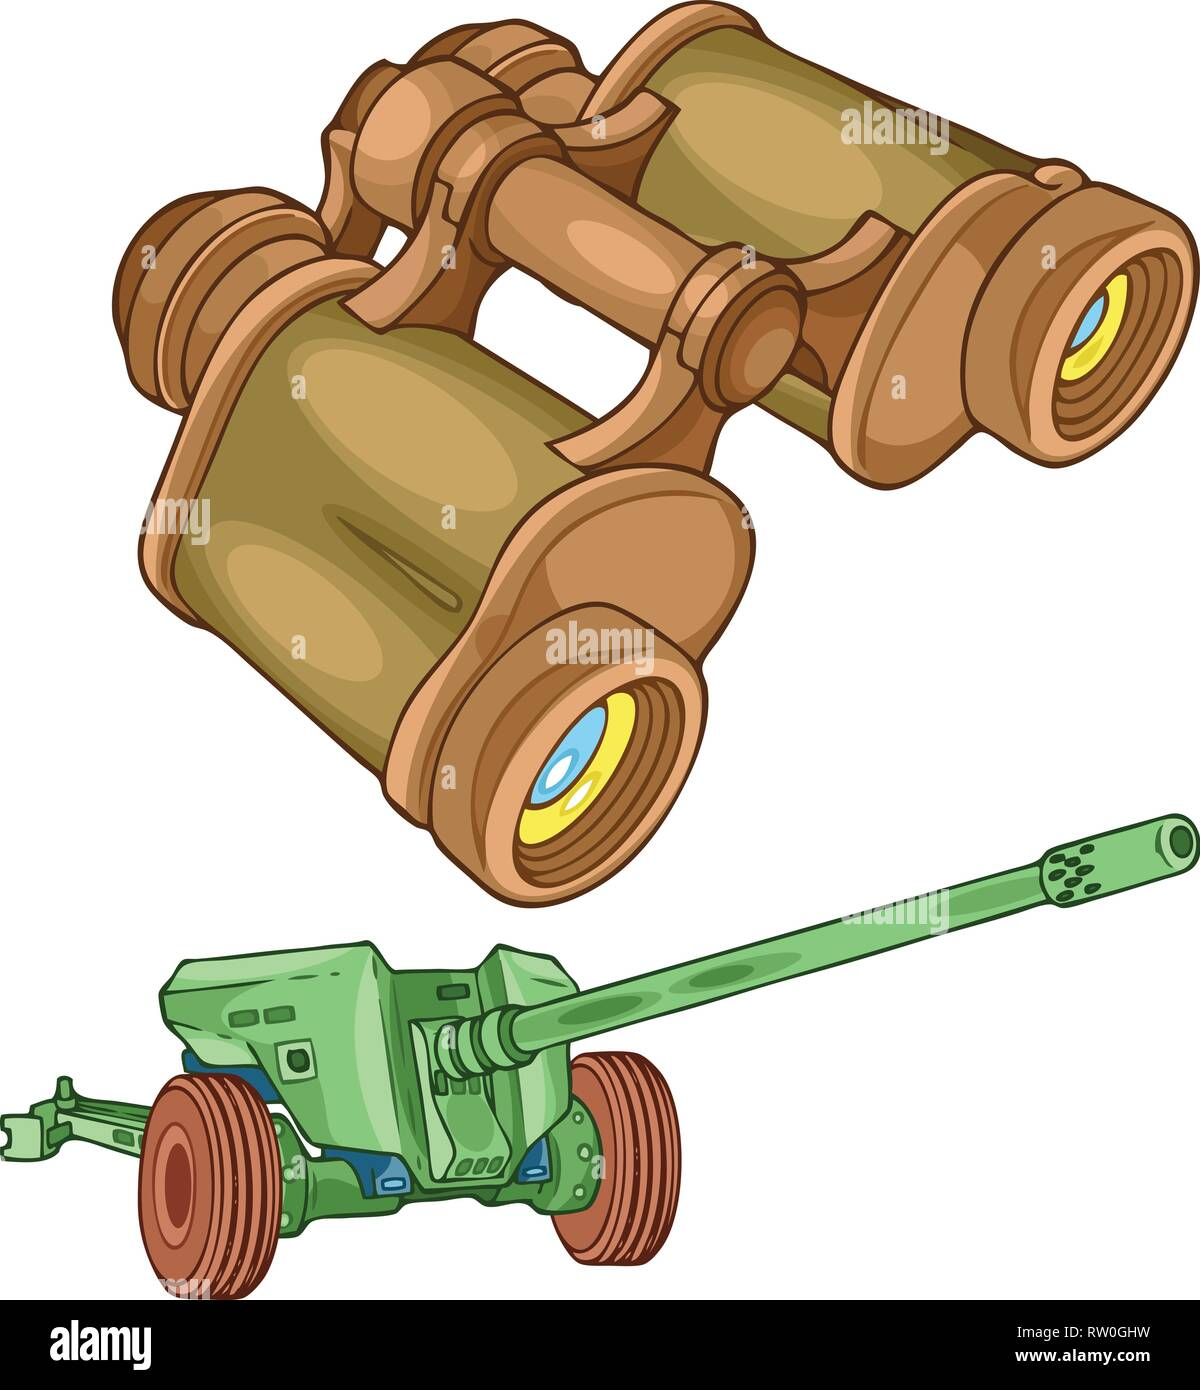 The illustration shows the military binoculars and gun on separate layers. - Stock Vector